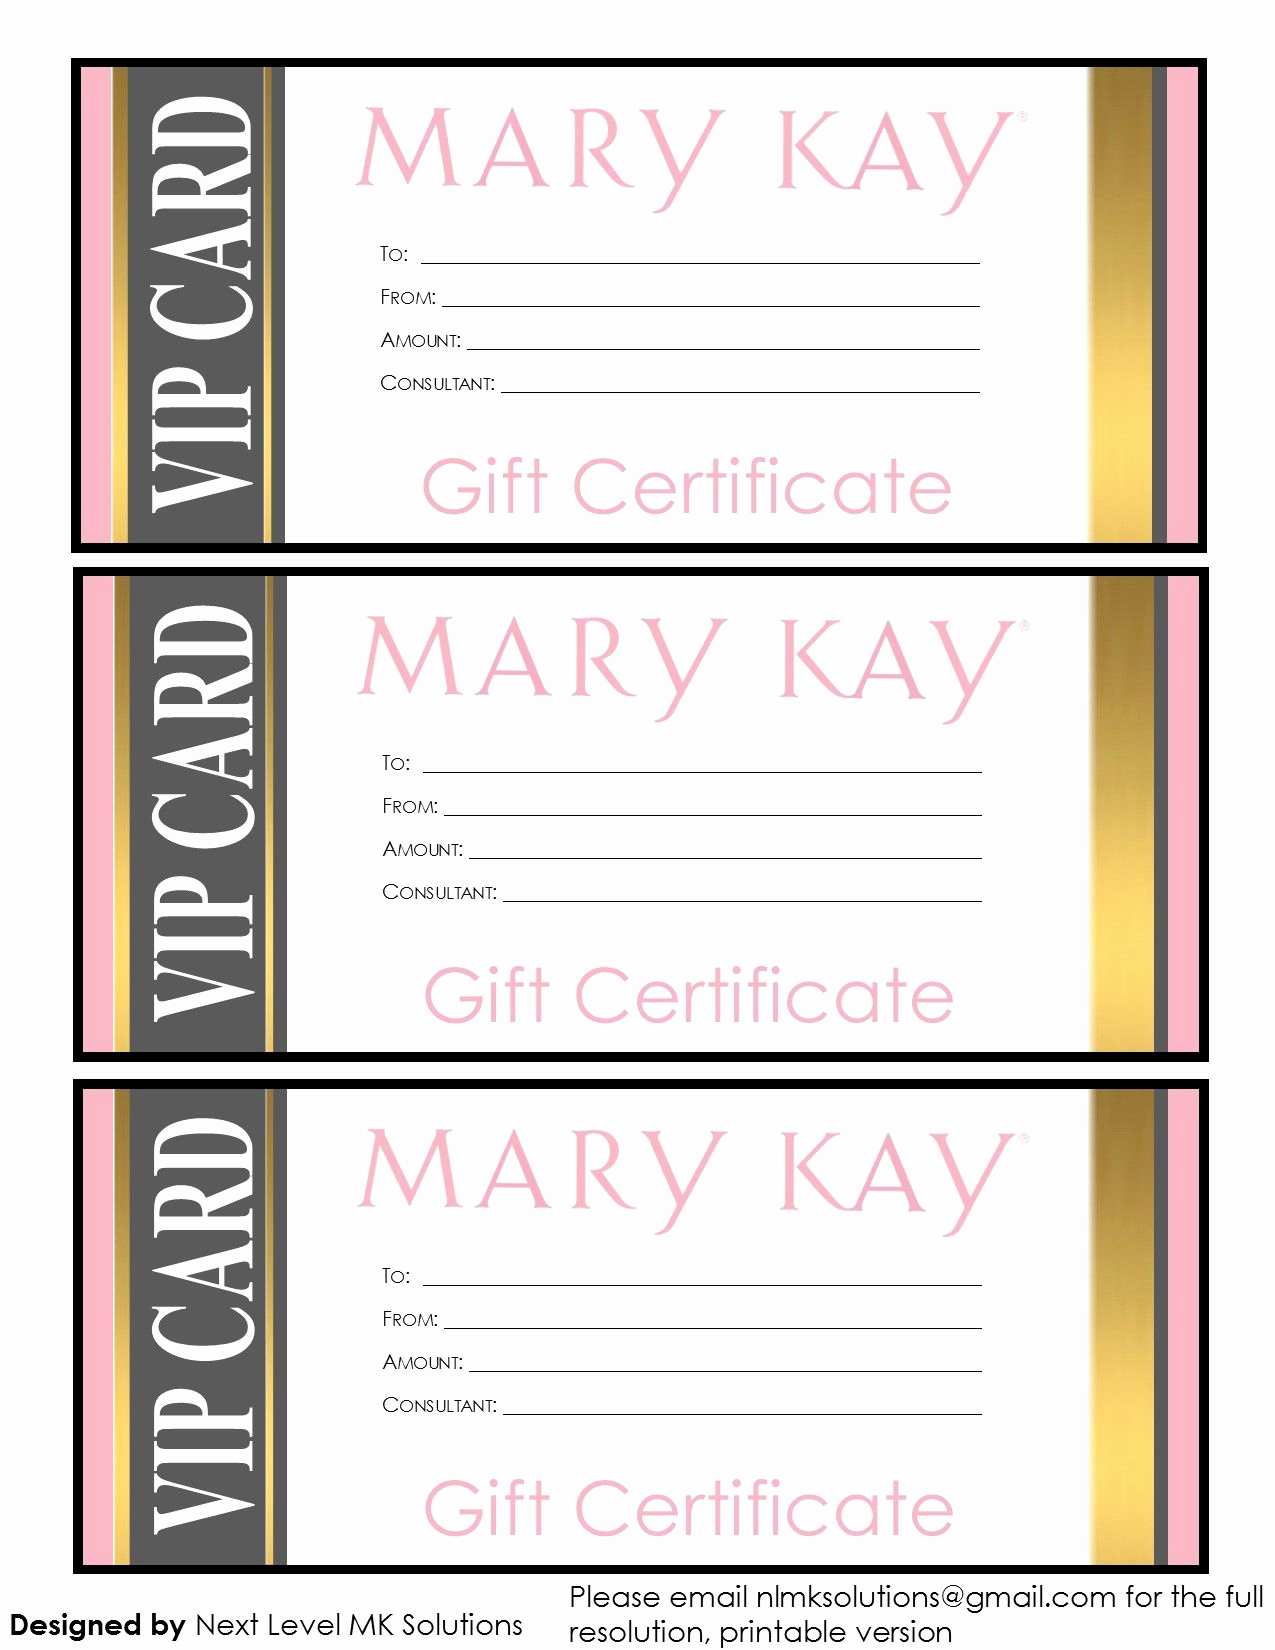 Email Gift Certificate Template Luxury Mary Kay T Certificates Please Email for the Full Pdf